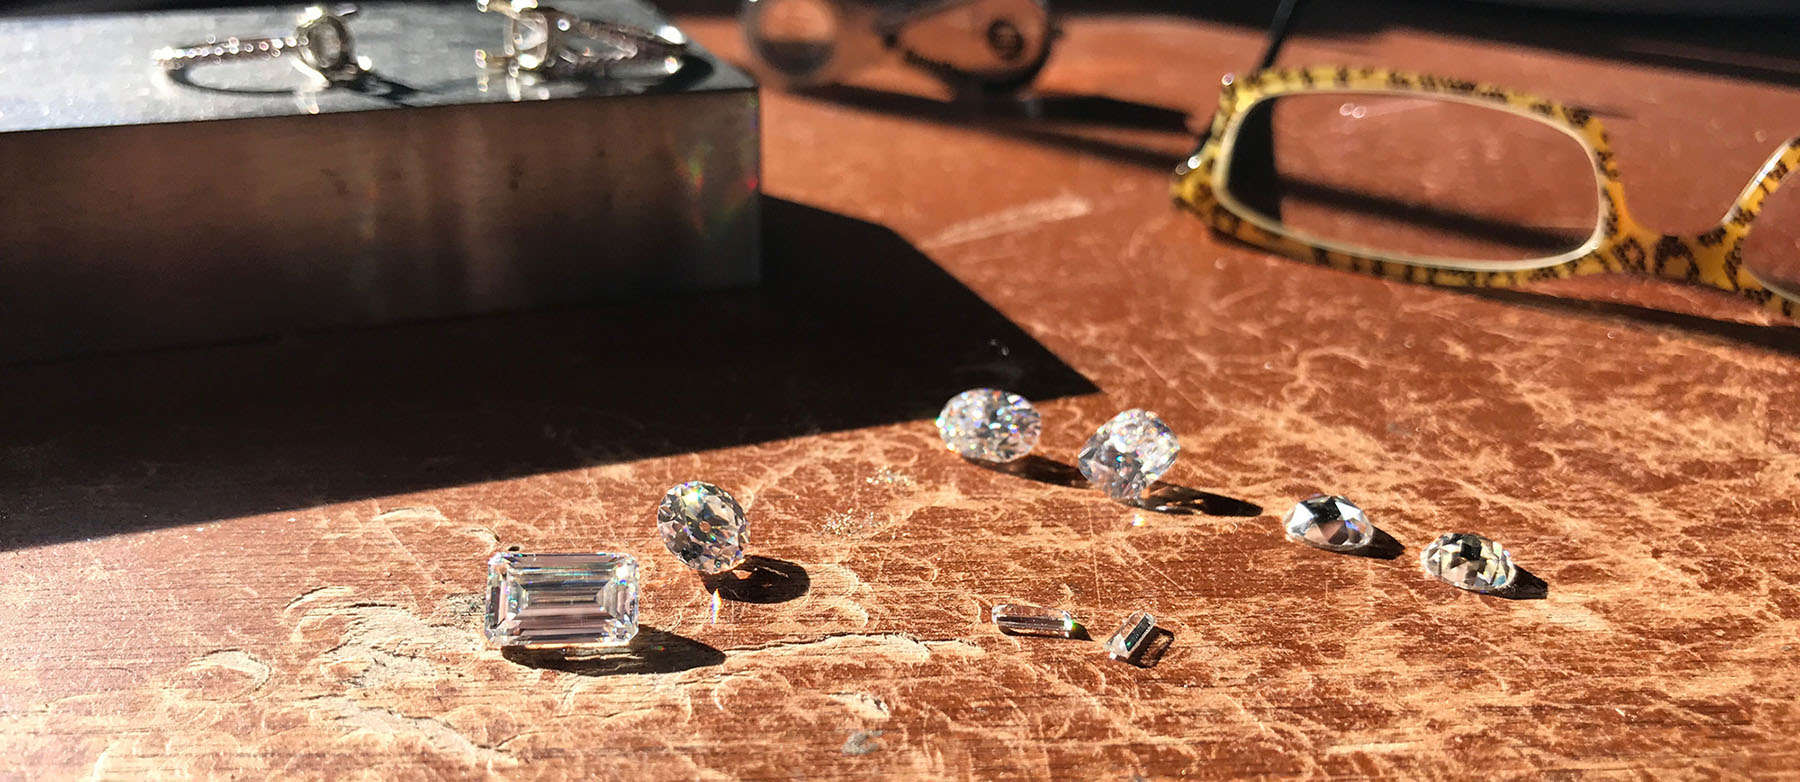 Jeweler's Bench - ZAYA moissanite jewels jewelry jeweler